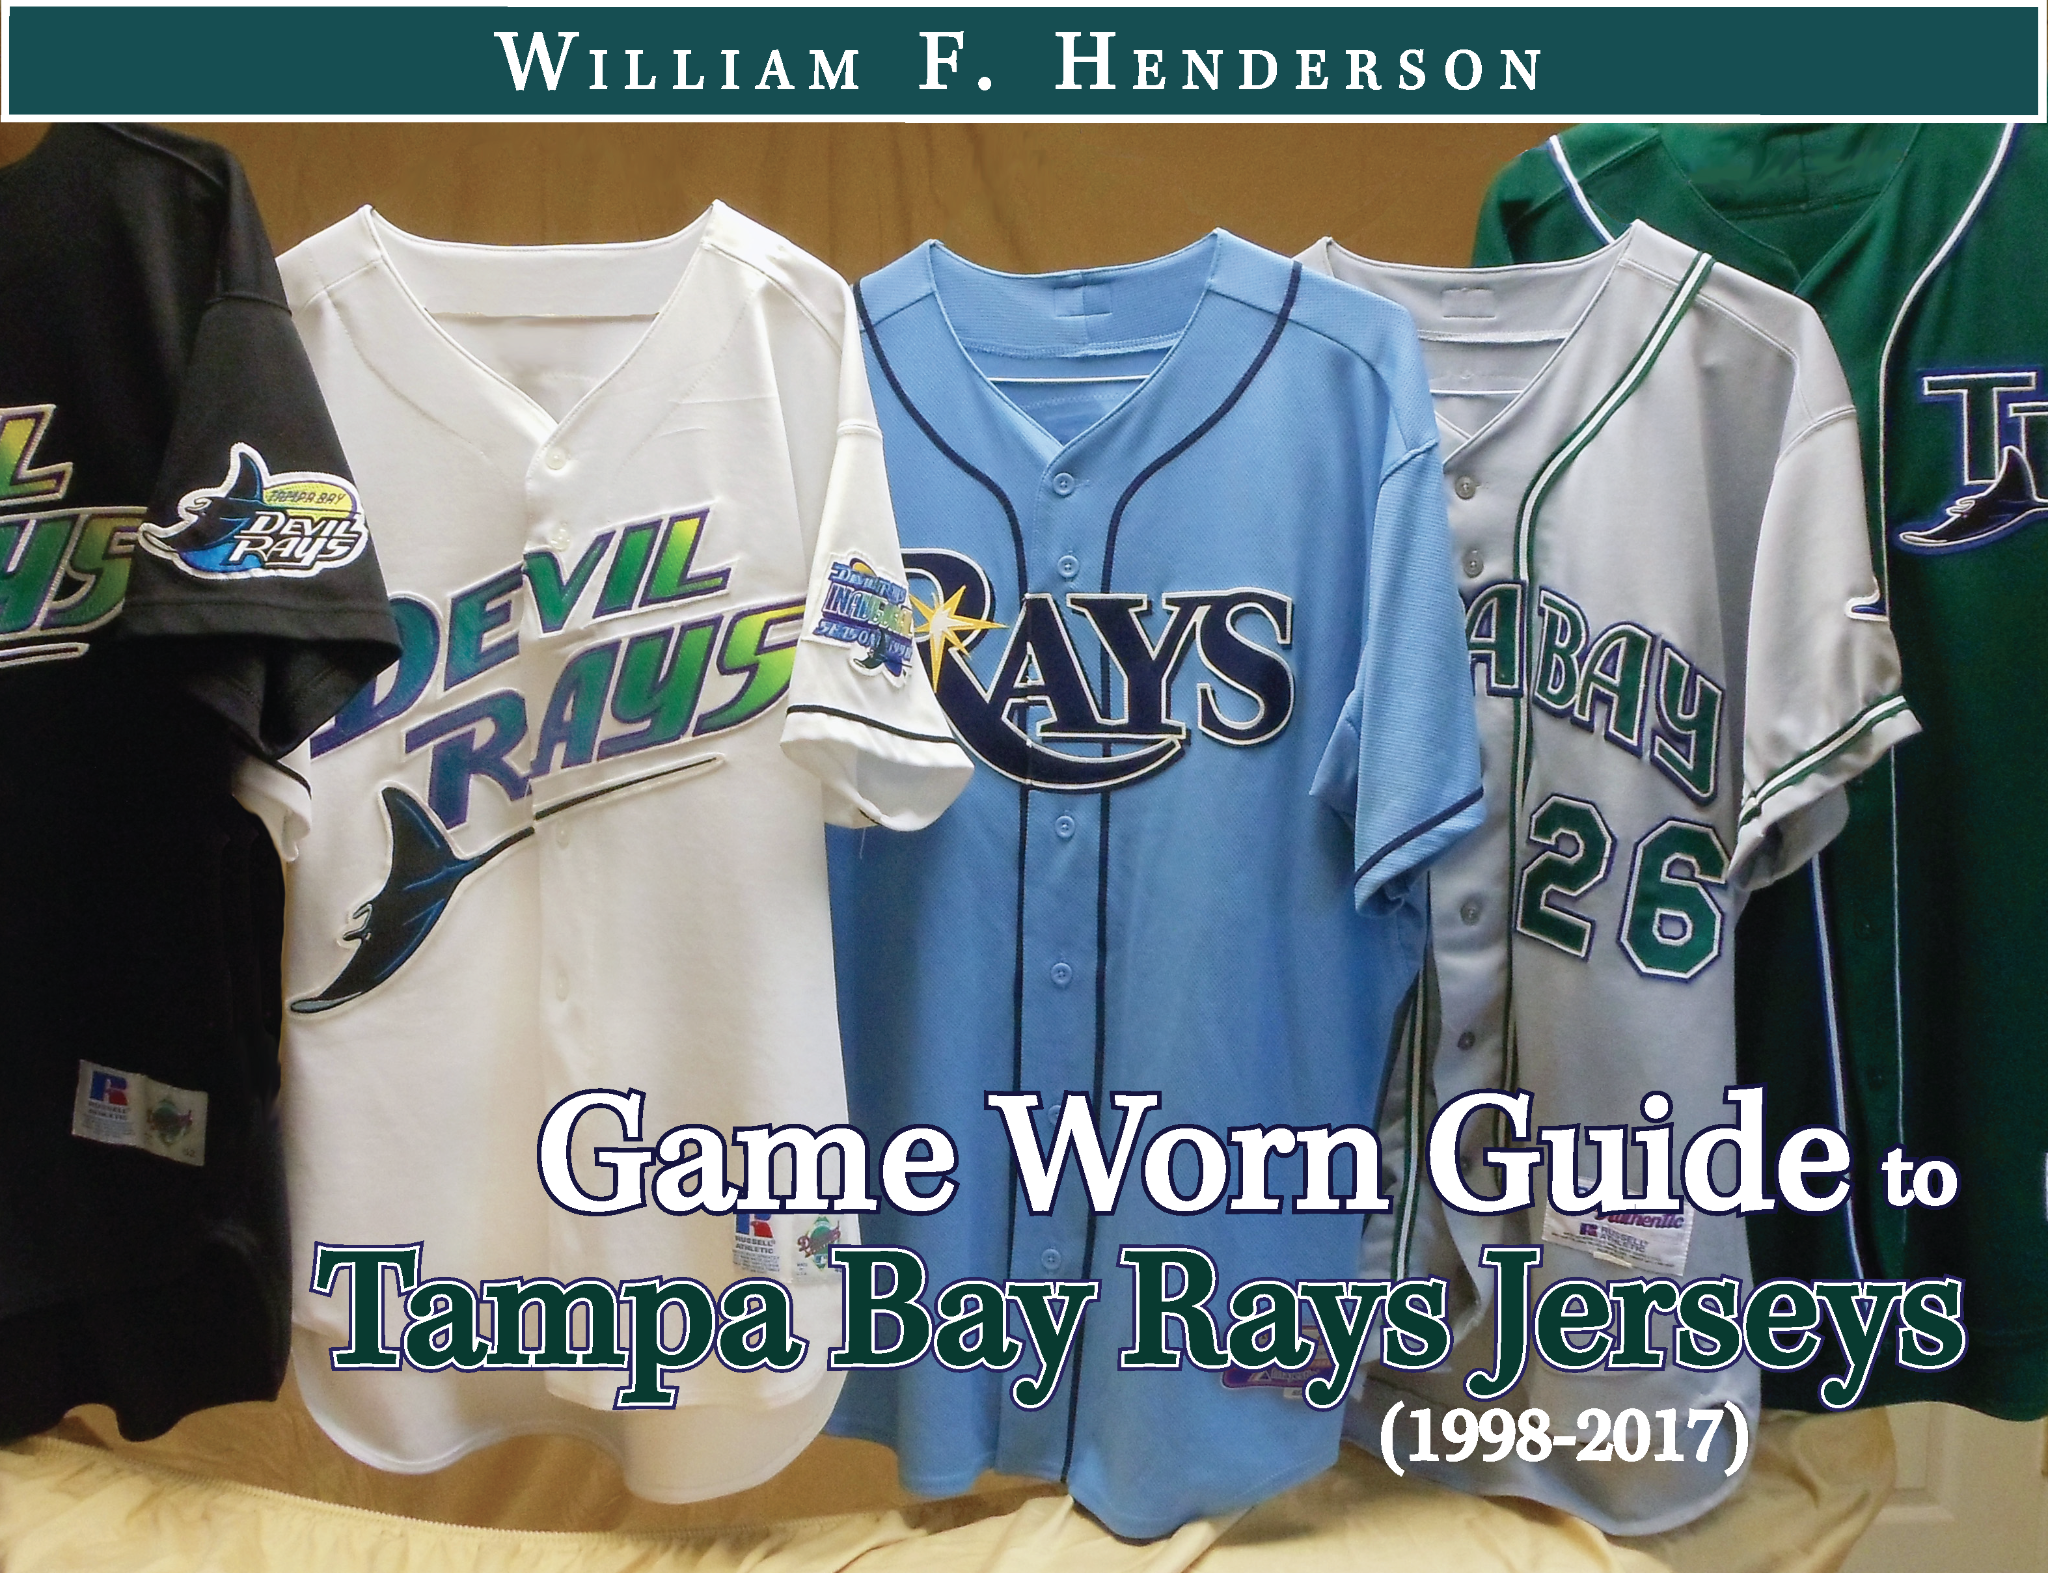 Game Worn Guide to Tampa Bay Rays Jerseys (1998-2017)